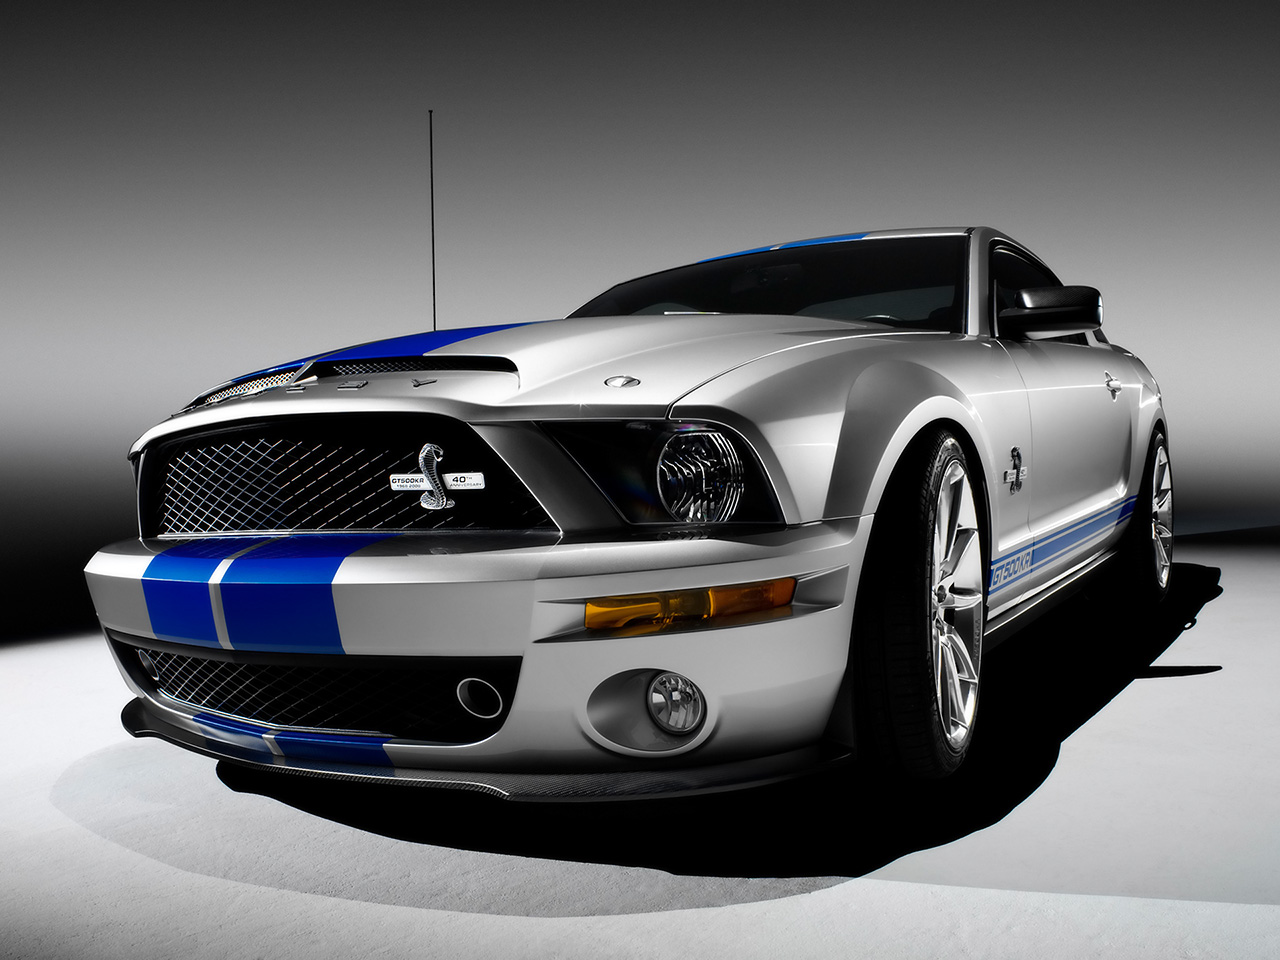 2016 ford mustang gt price 2015 best auto reviews. Black Bedroom Furniture Sets. Home Design Ideas